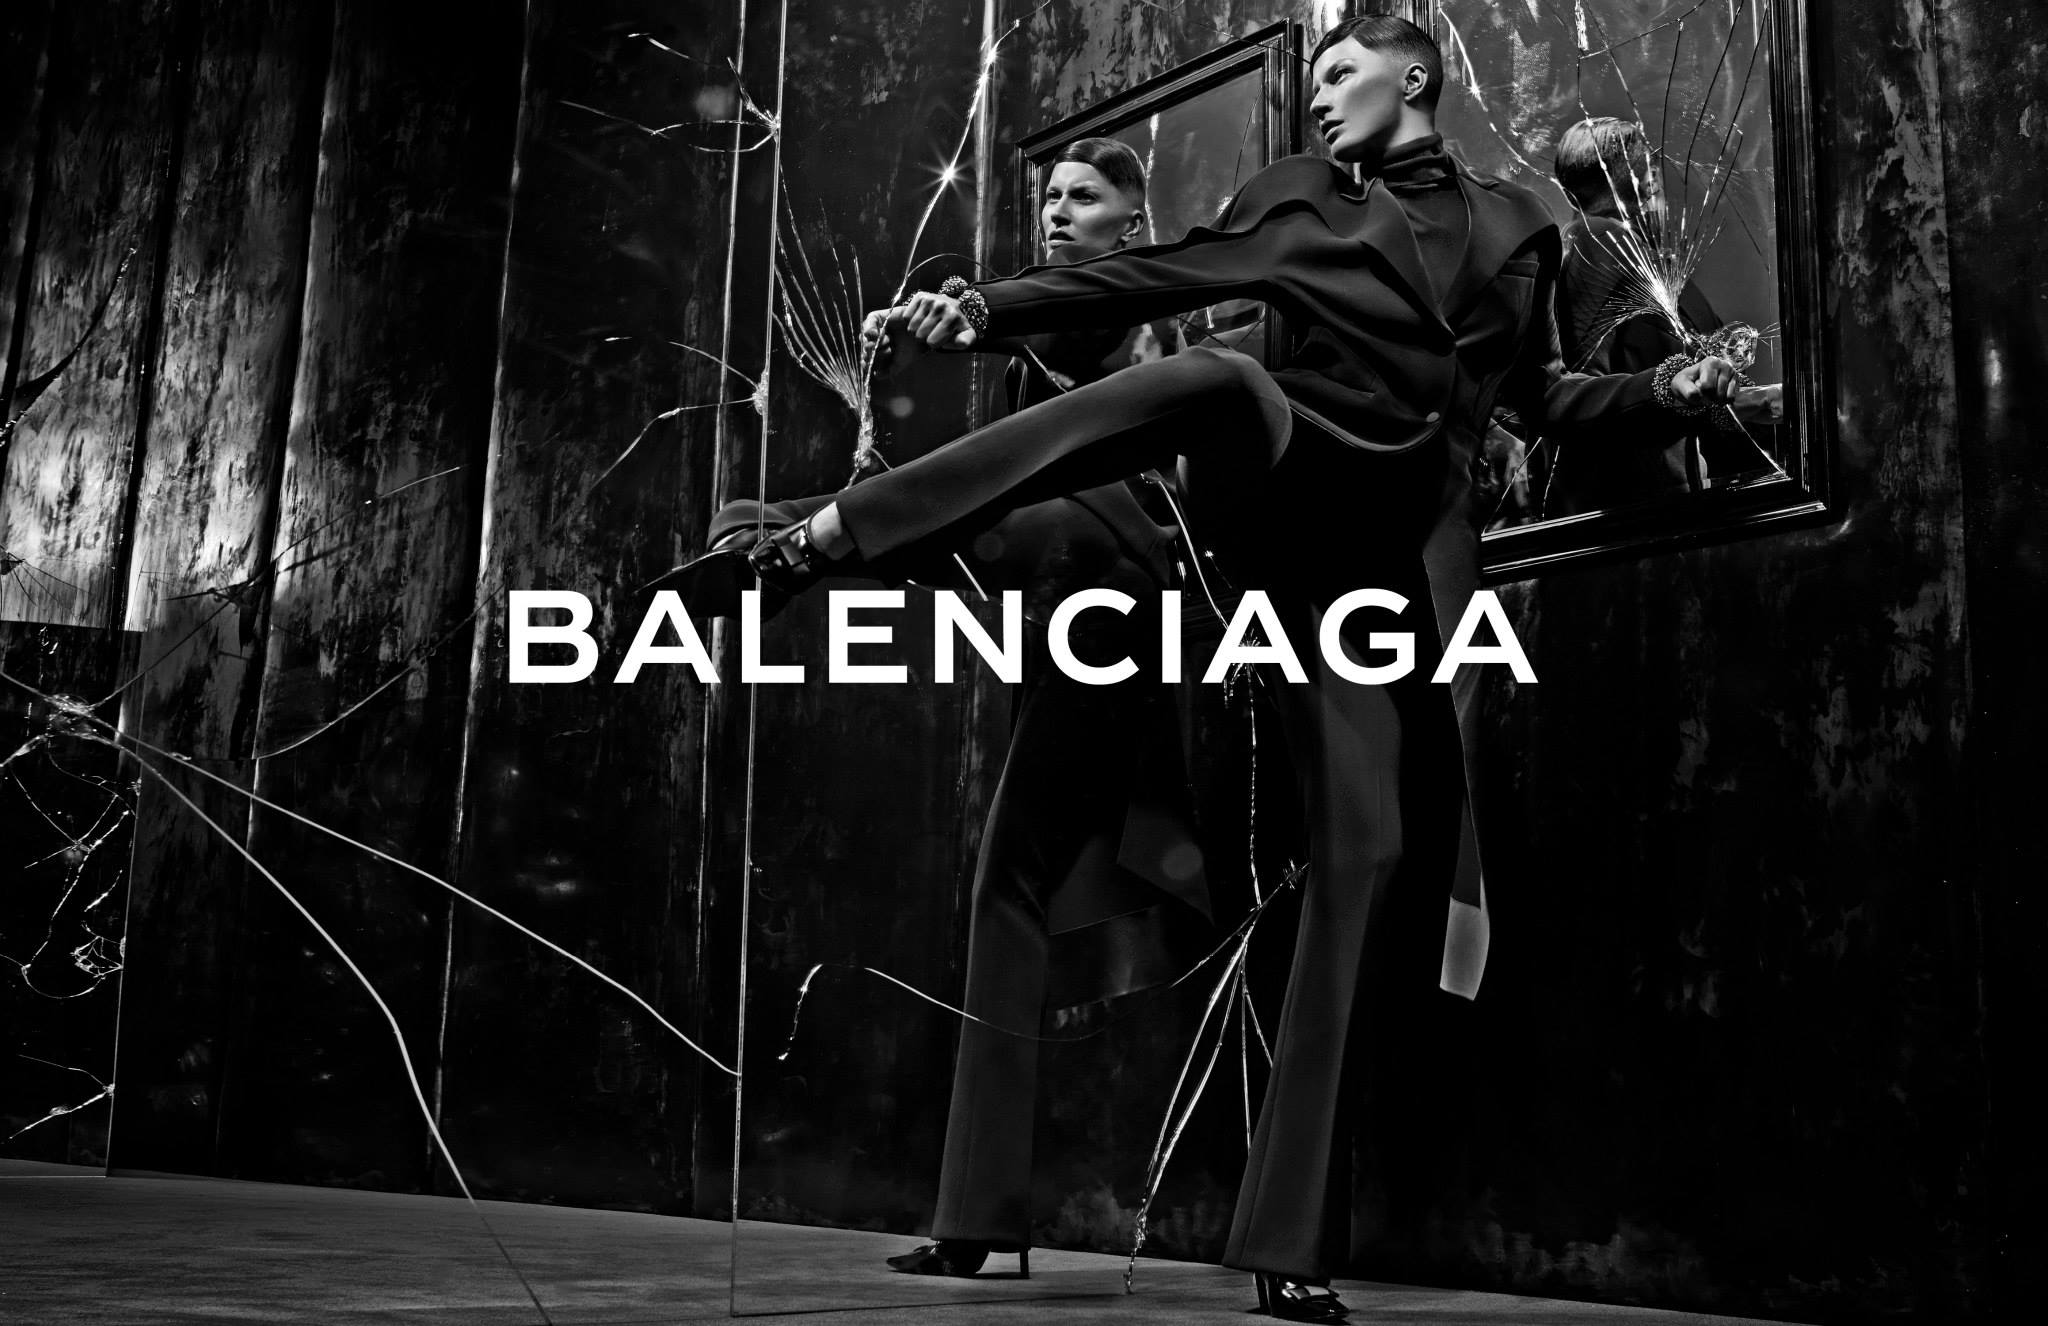 gisele-bc3bcndchen-by-steven-klein-for-balenciaga-fall-winter-2014-2015-2